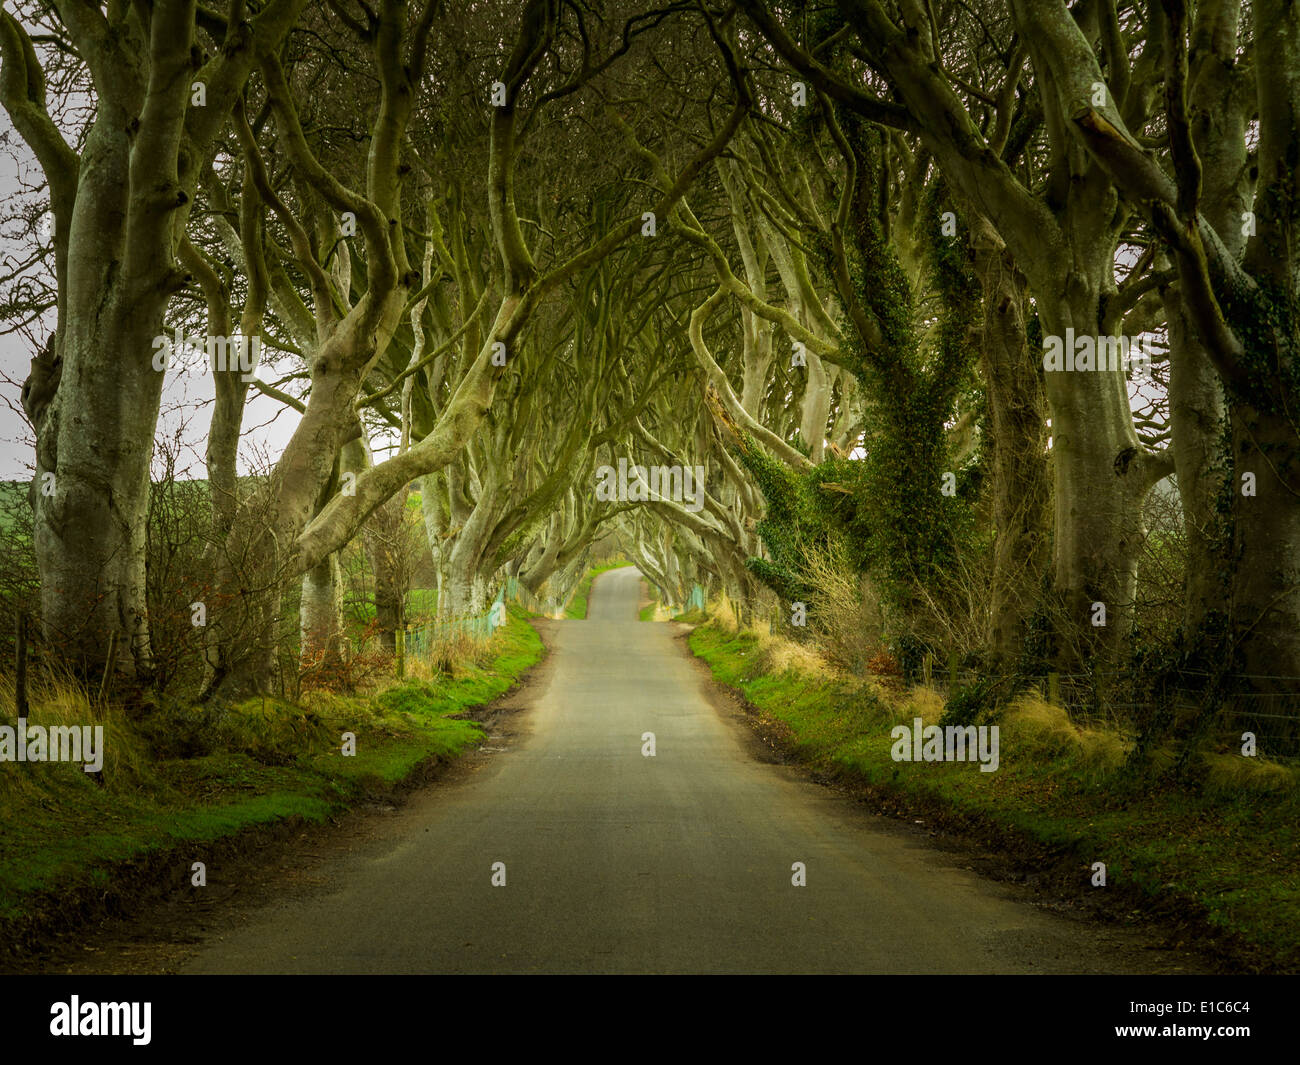 Ireland - Dark Hedges - a famous magical tree-lined road near Ballymoney, County Antrim, Northern Ireland, UK - Stock Image